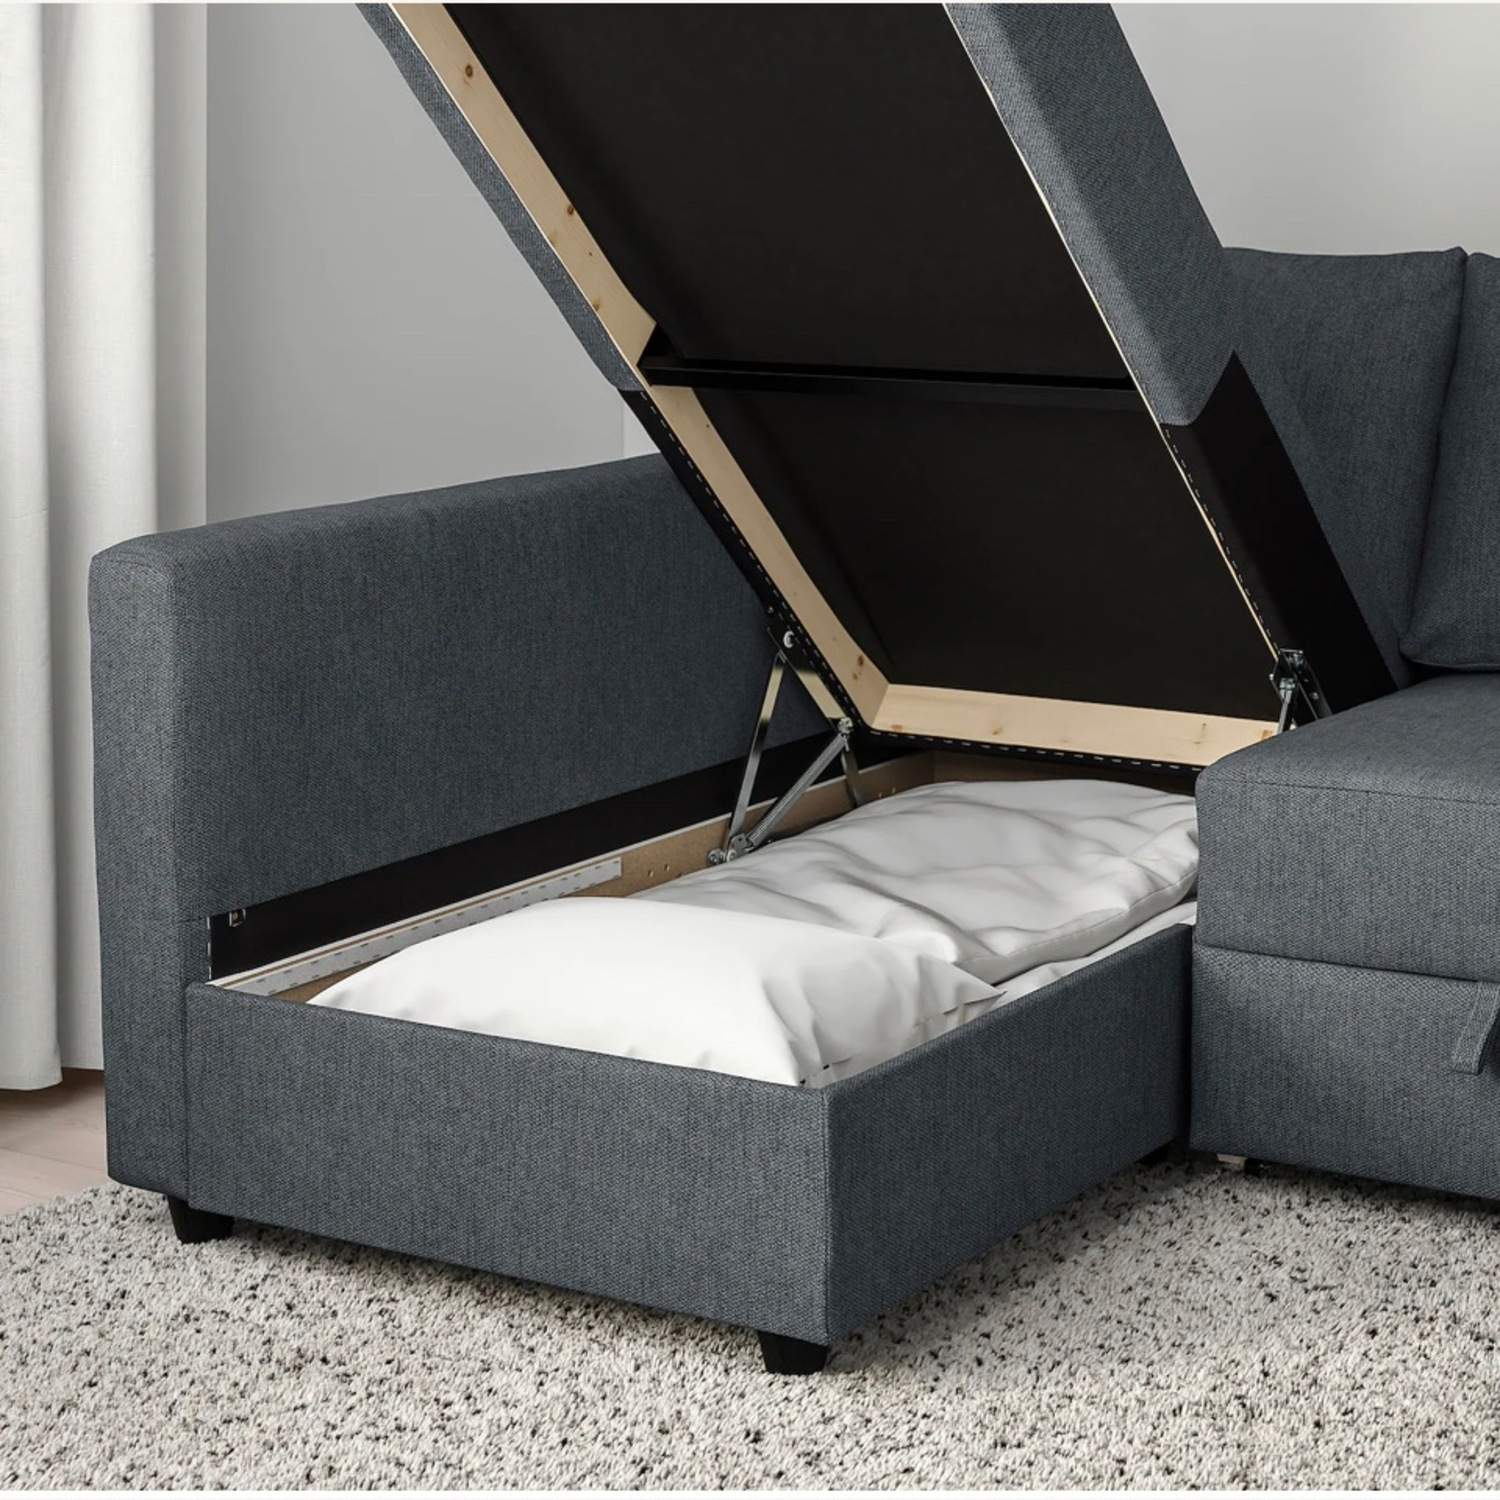 The Perfect Lounging Sectional Couch - image-4